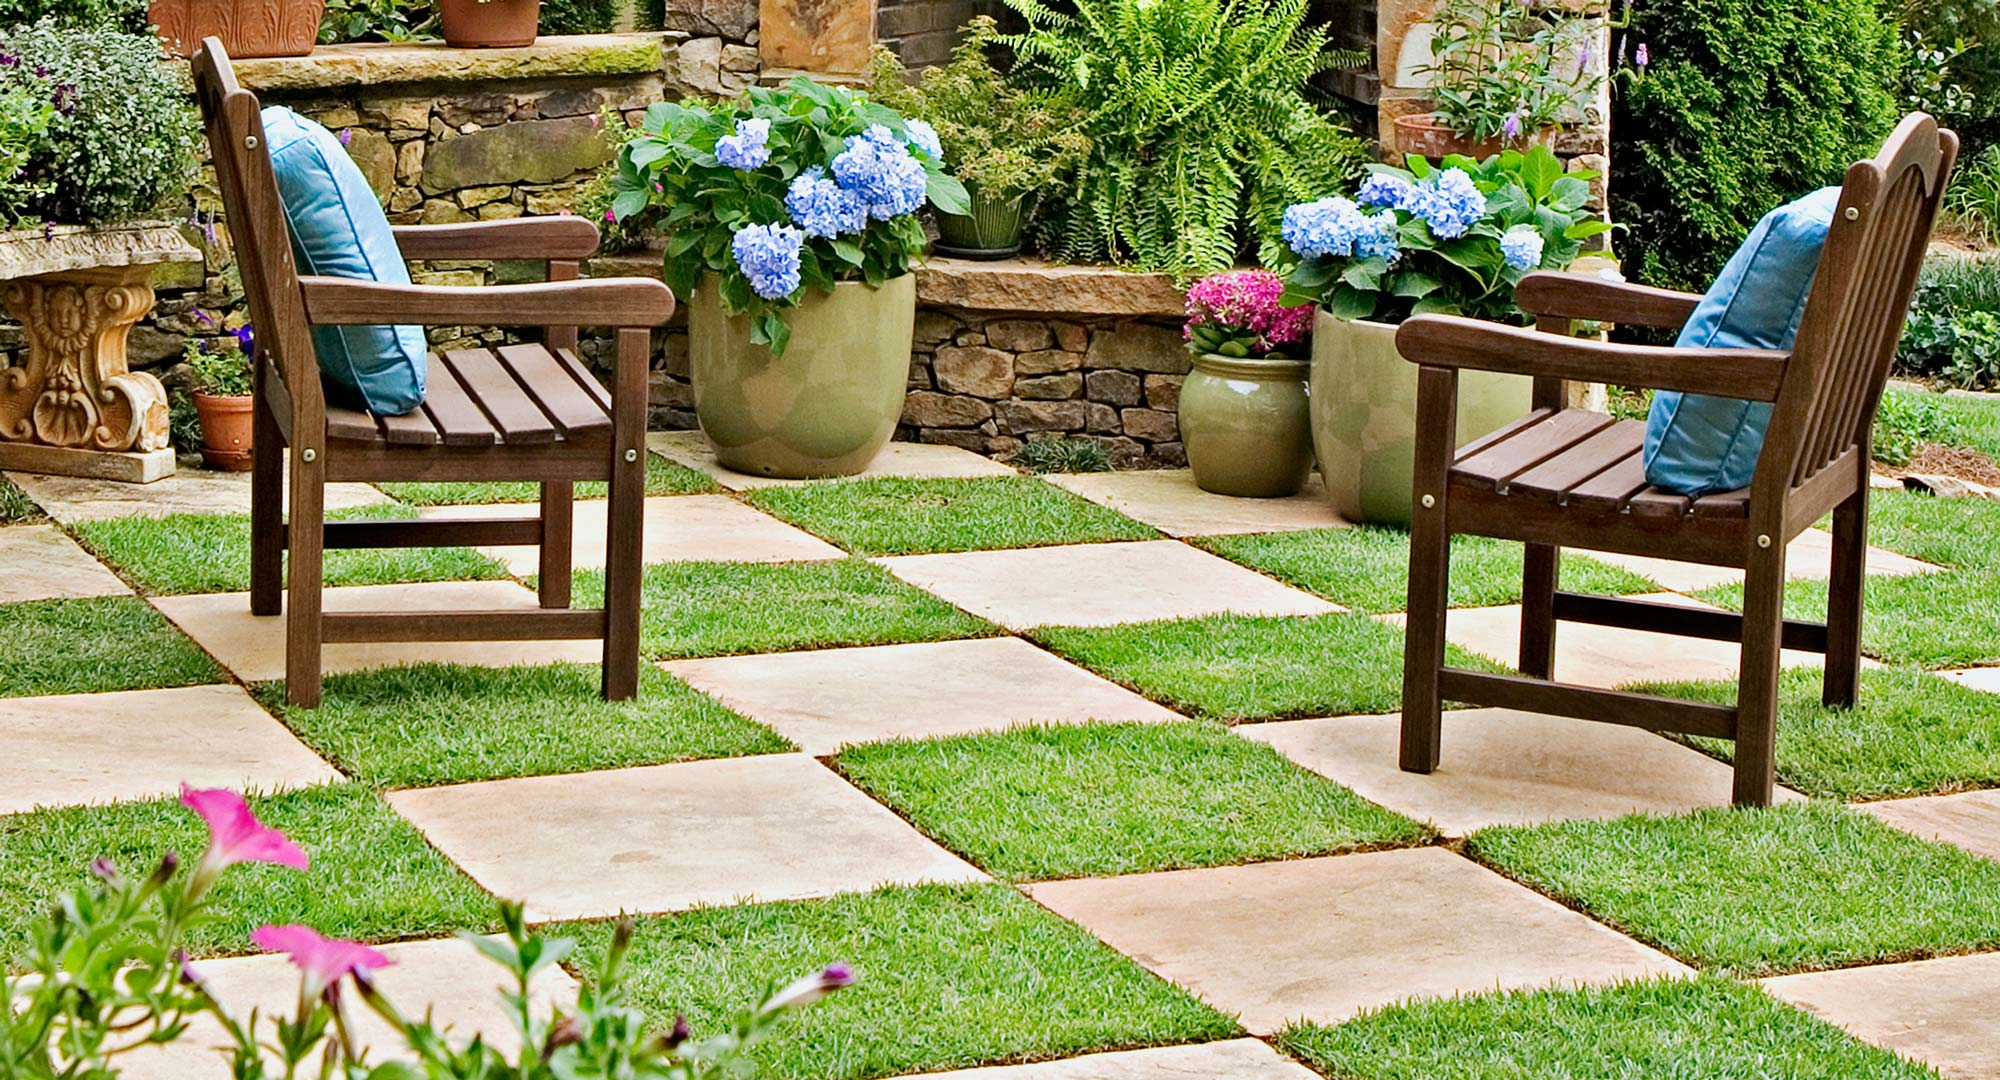 Patchwork Paving Checkerboard Your Backyard With Style